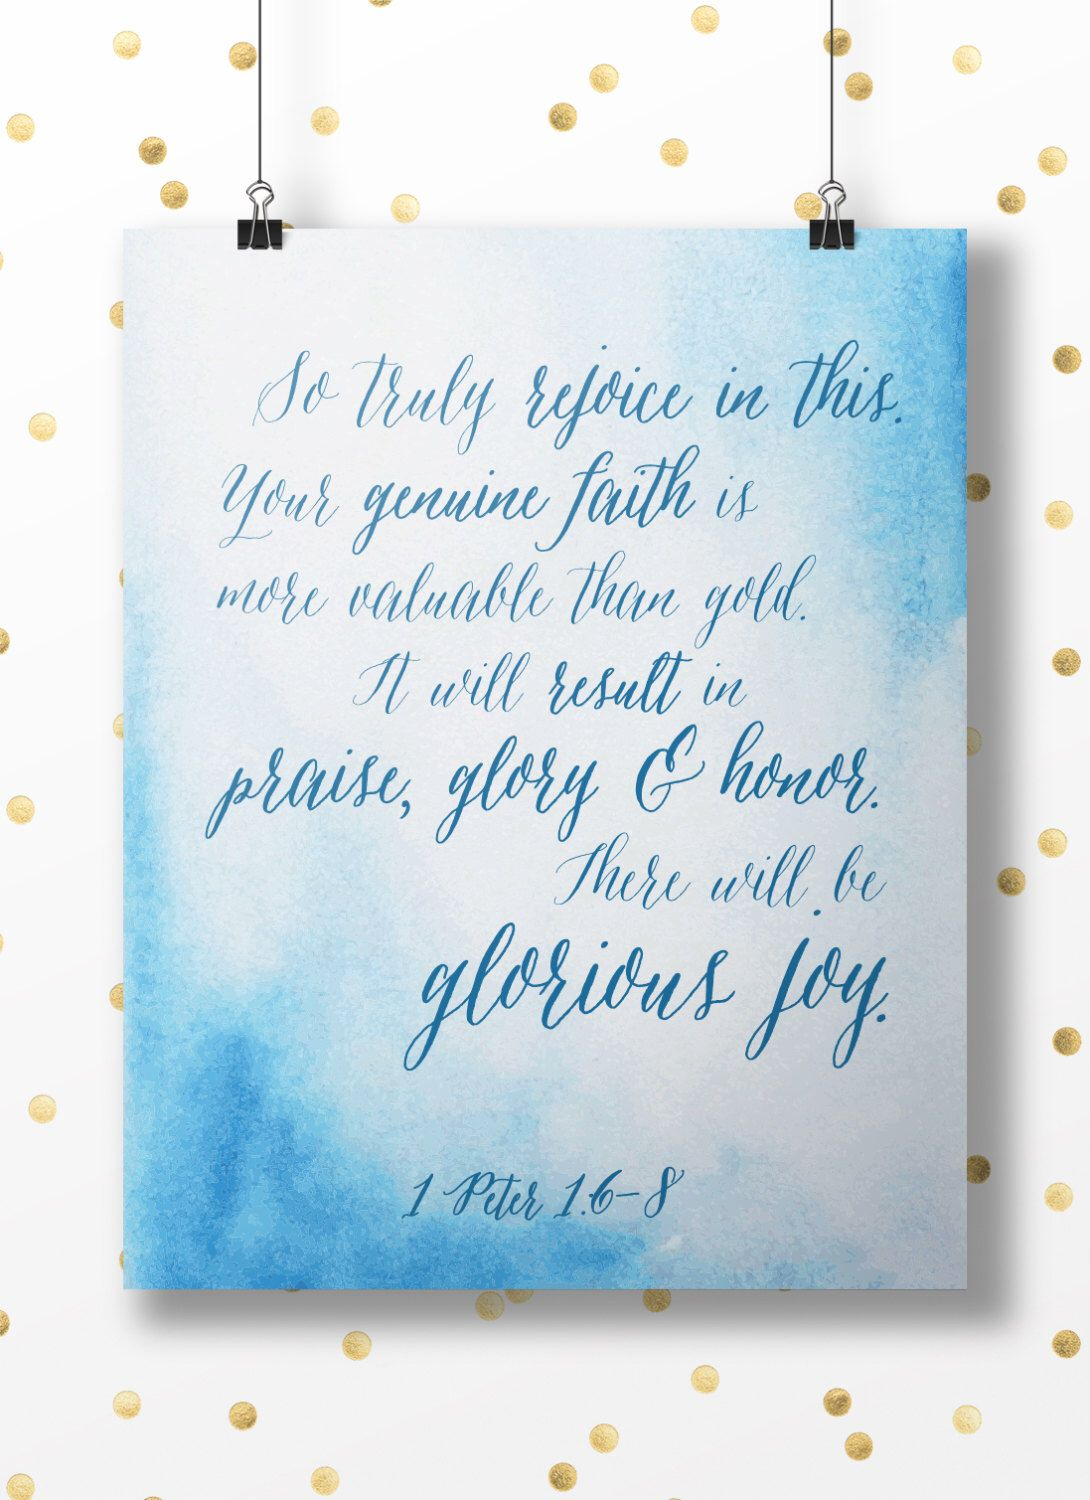 Double This Bible Bible Verses About Joy Esv Bible Verses About Joy Peter Re Will Be Glorious Joy Rejoice Gratitude This Bible Verseart Printable Wall Instant Download Peter Re Will Be Glorious Joy Re